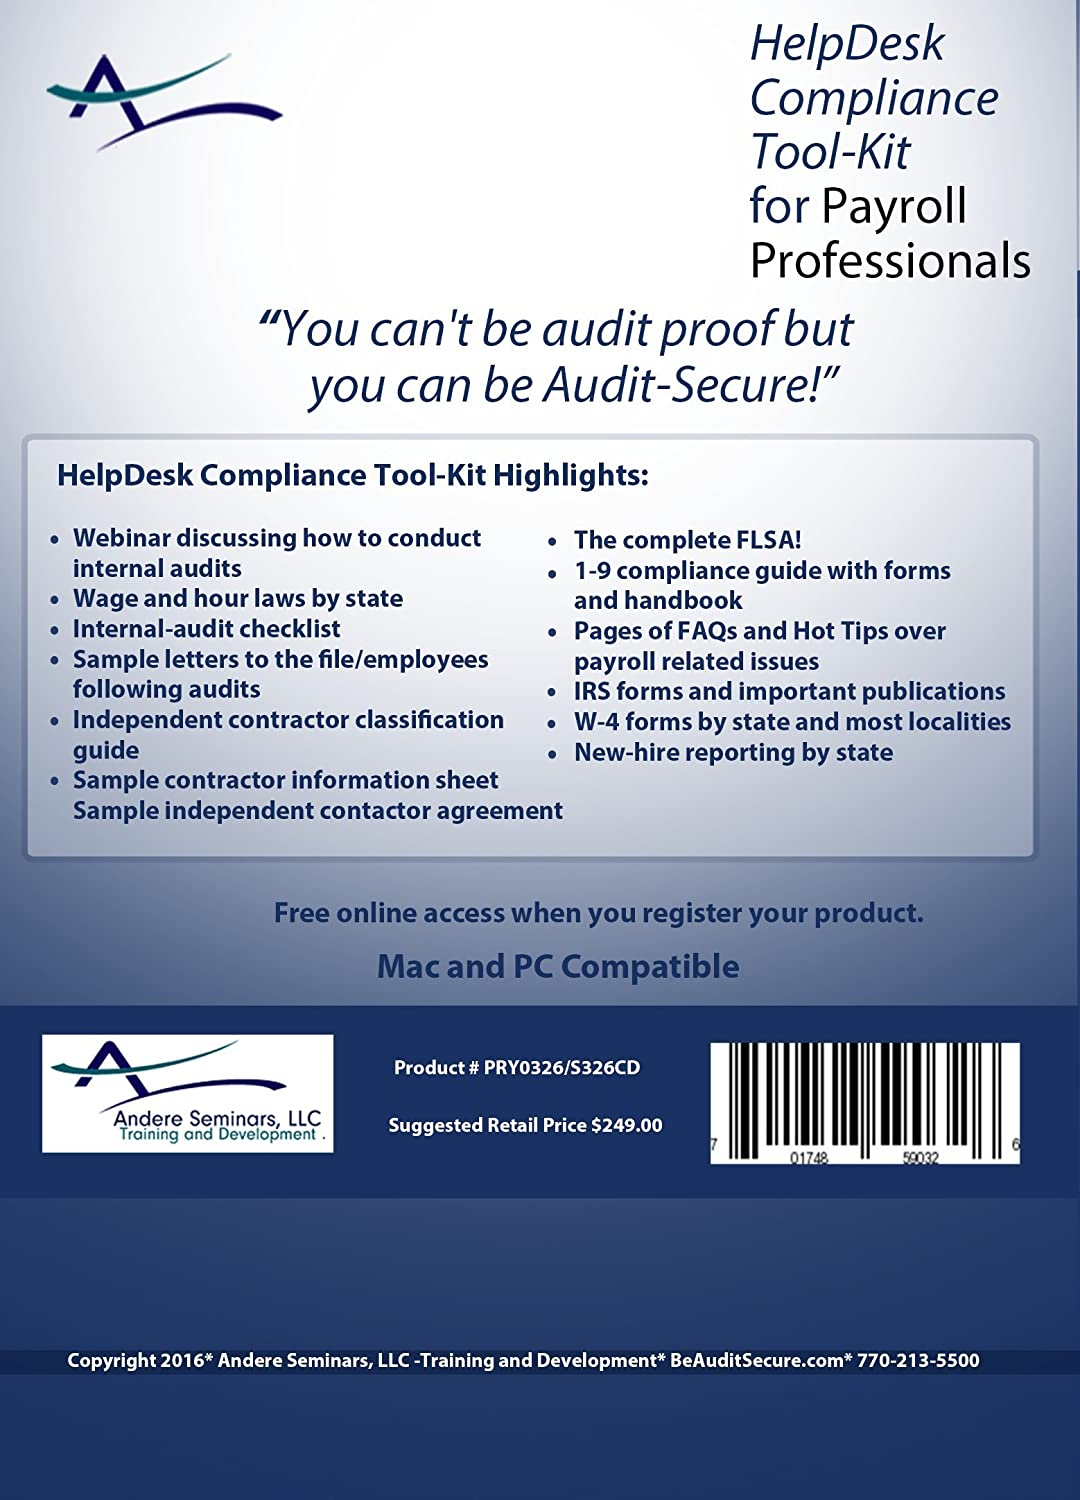 Amazon 2016 helpdesk compliance tool kit for payroll amazon 2016 helpdesk compliance tool kit for payroll professionals includes internal audit checklists i 9 compliance instructions wage and hour help falaconquin